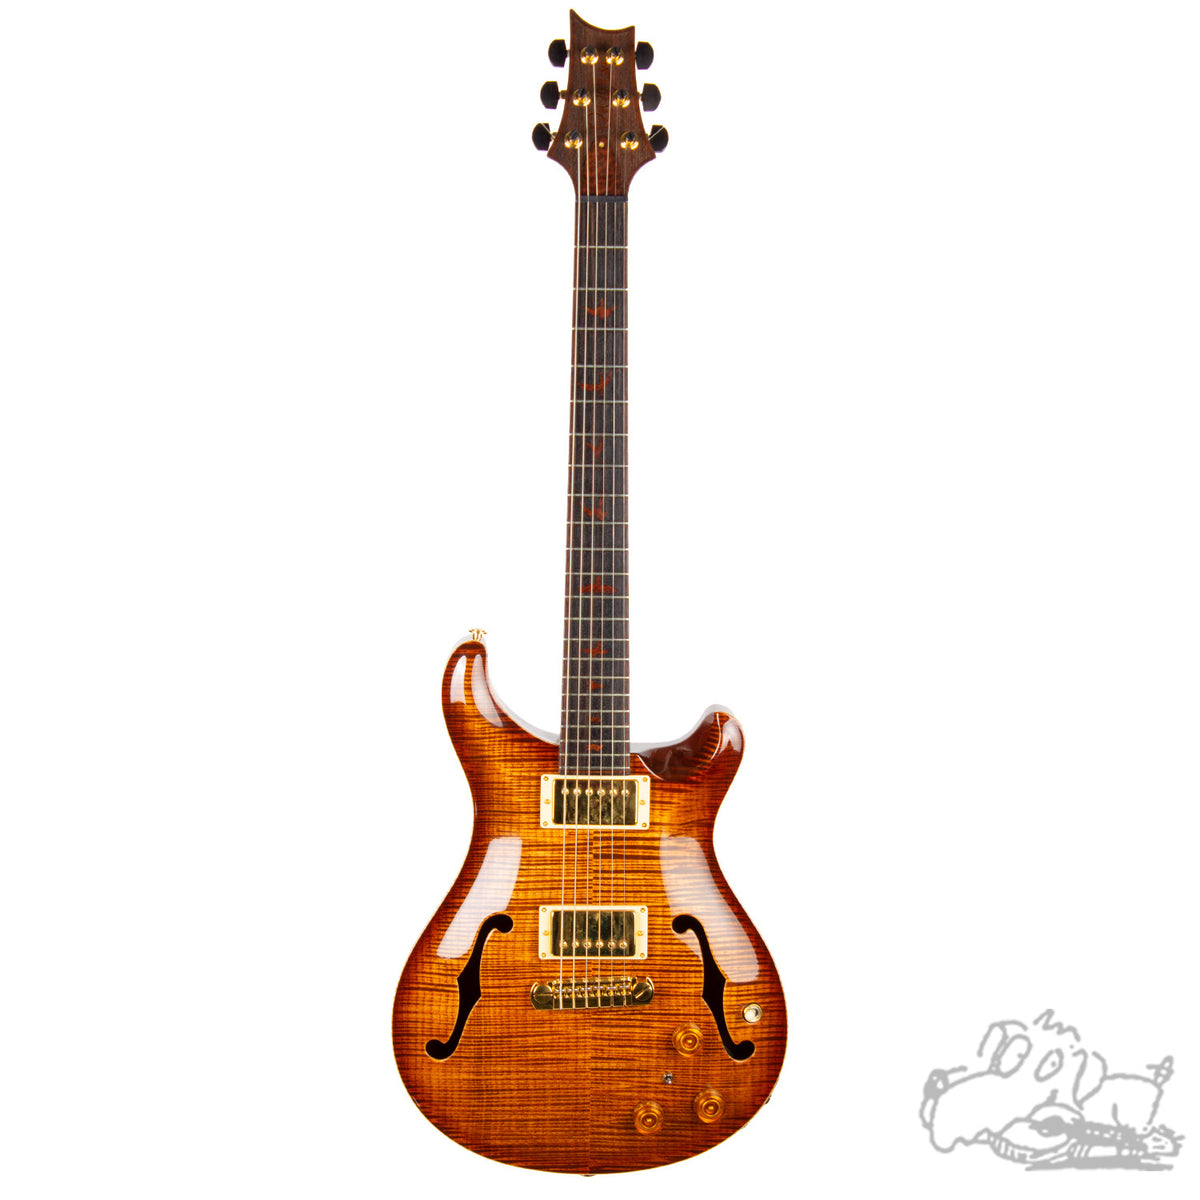 2004 PRS Hollowbody Employee Guitar - McCarty Model